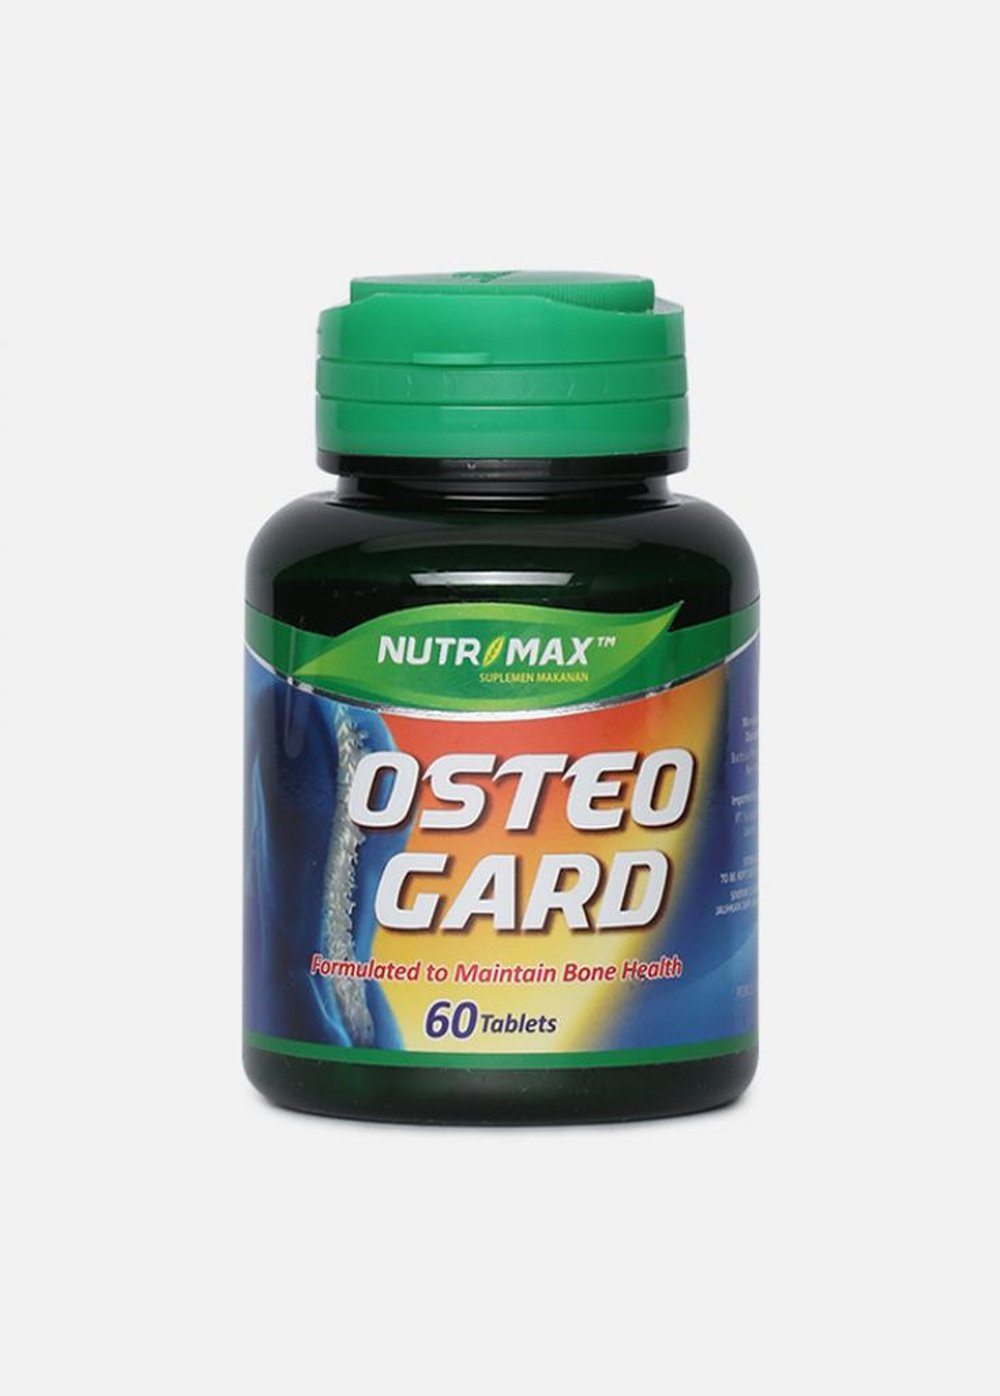 Osteo Gard 60 Tablet